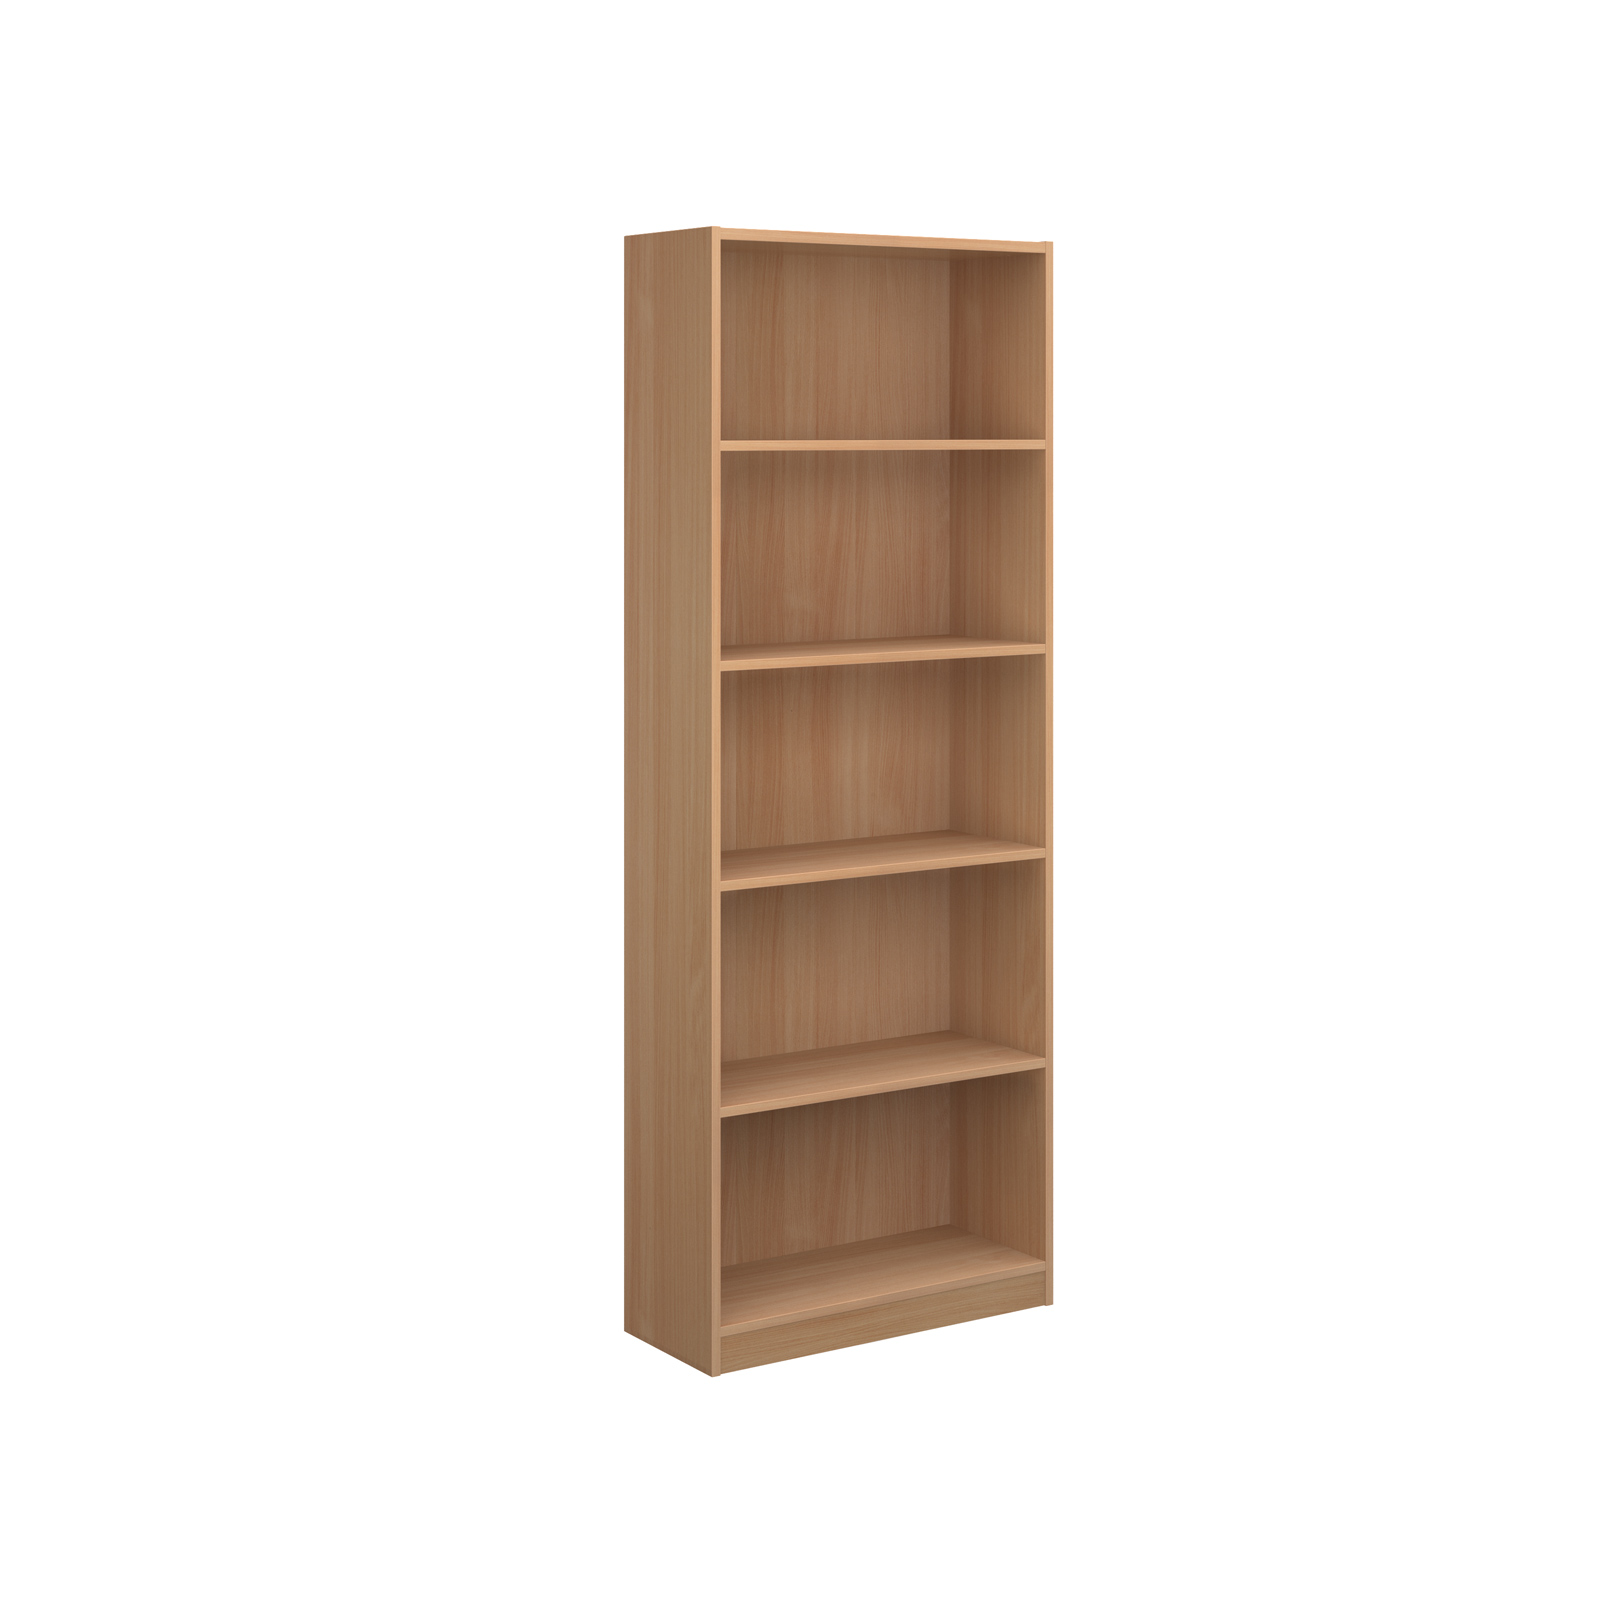 Economy bookcase 2004mm high with 4 shelves - beech